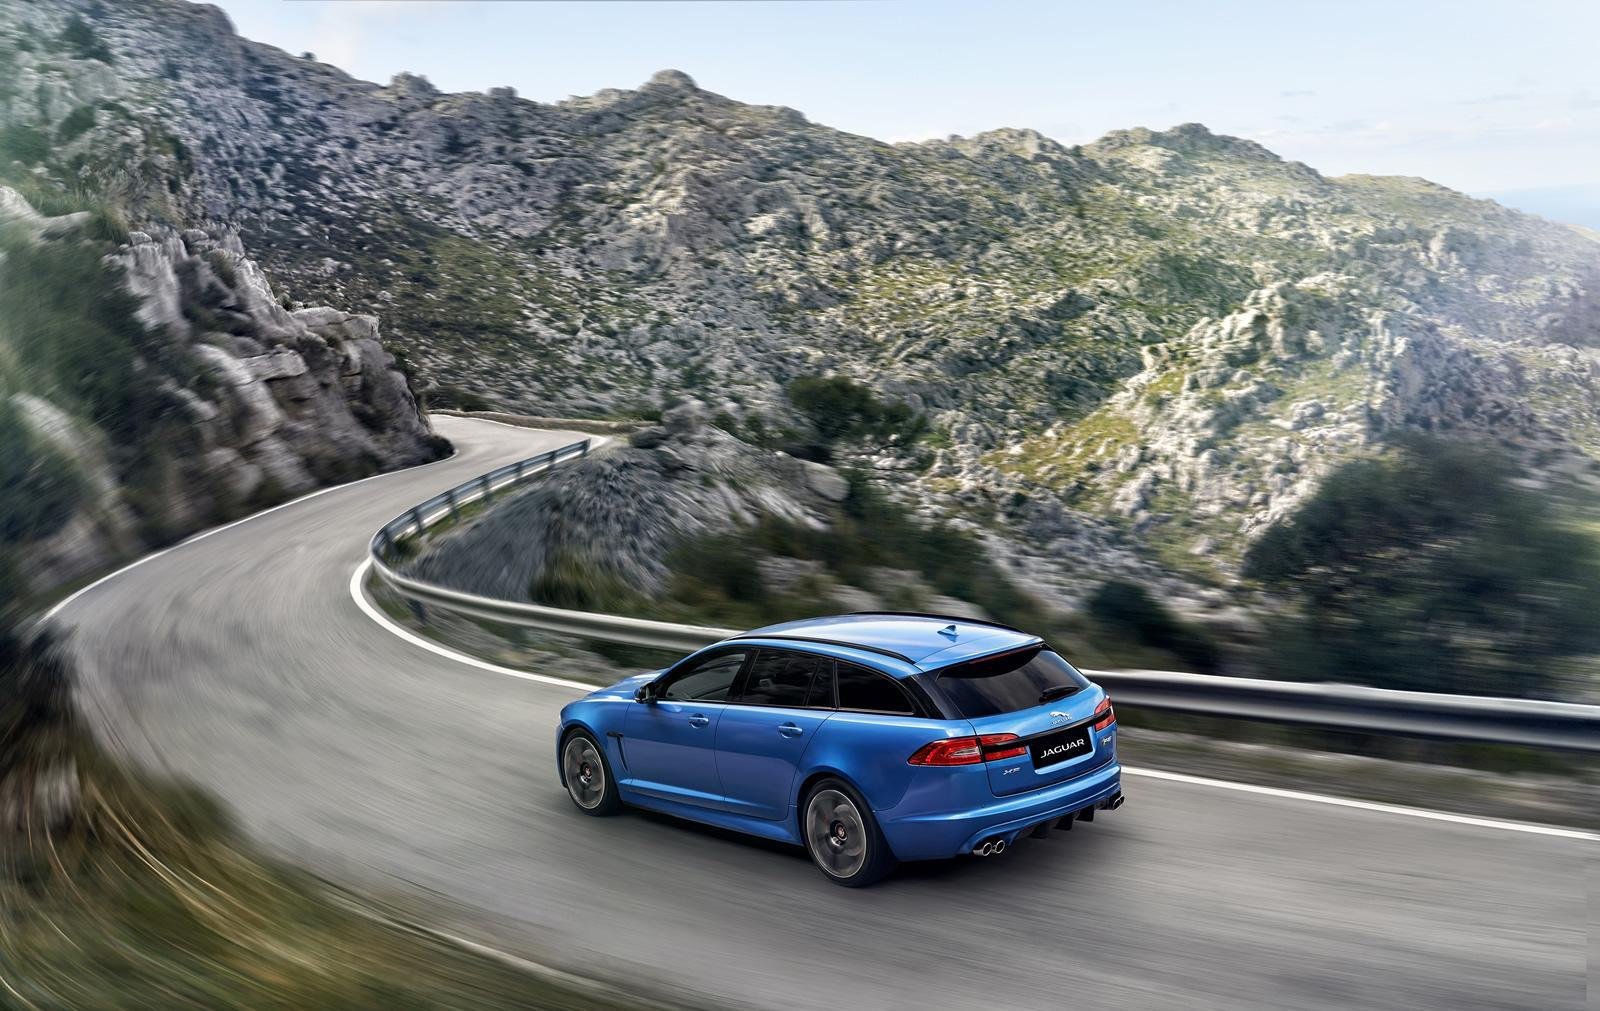 2019 Jaguar XFR S Sportbrake photo - 2